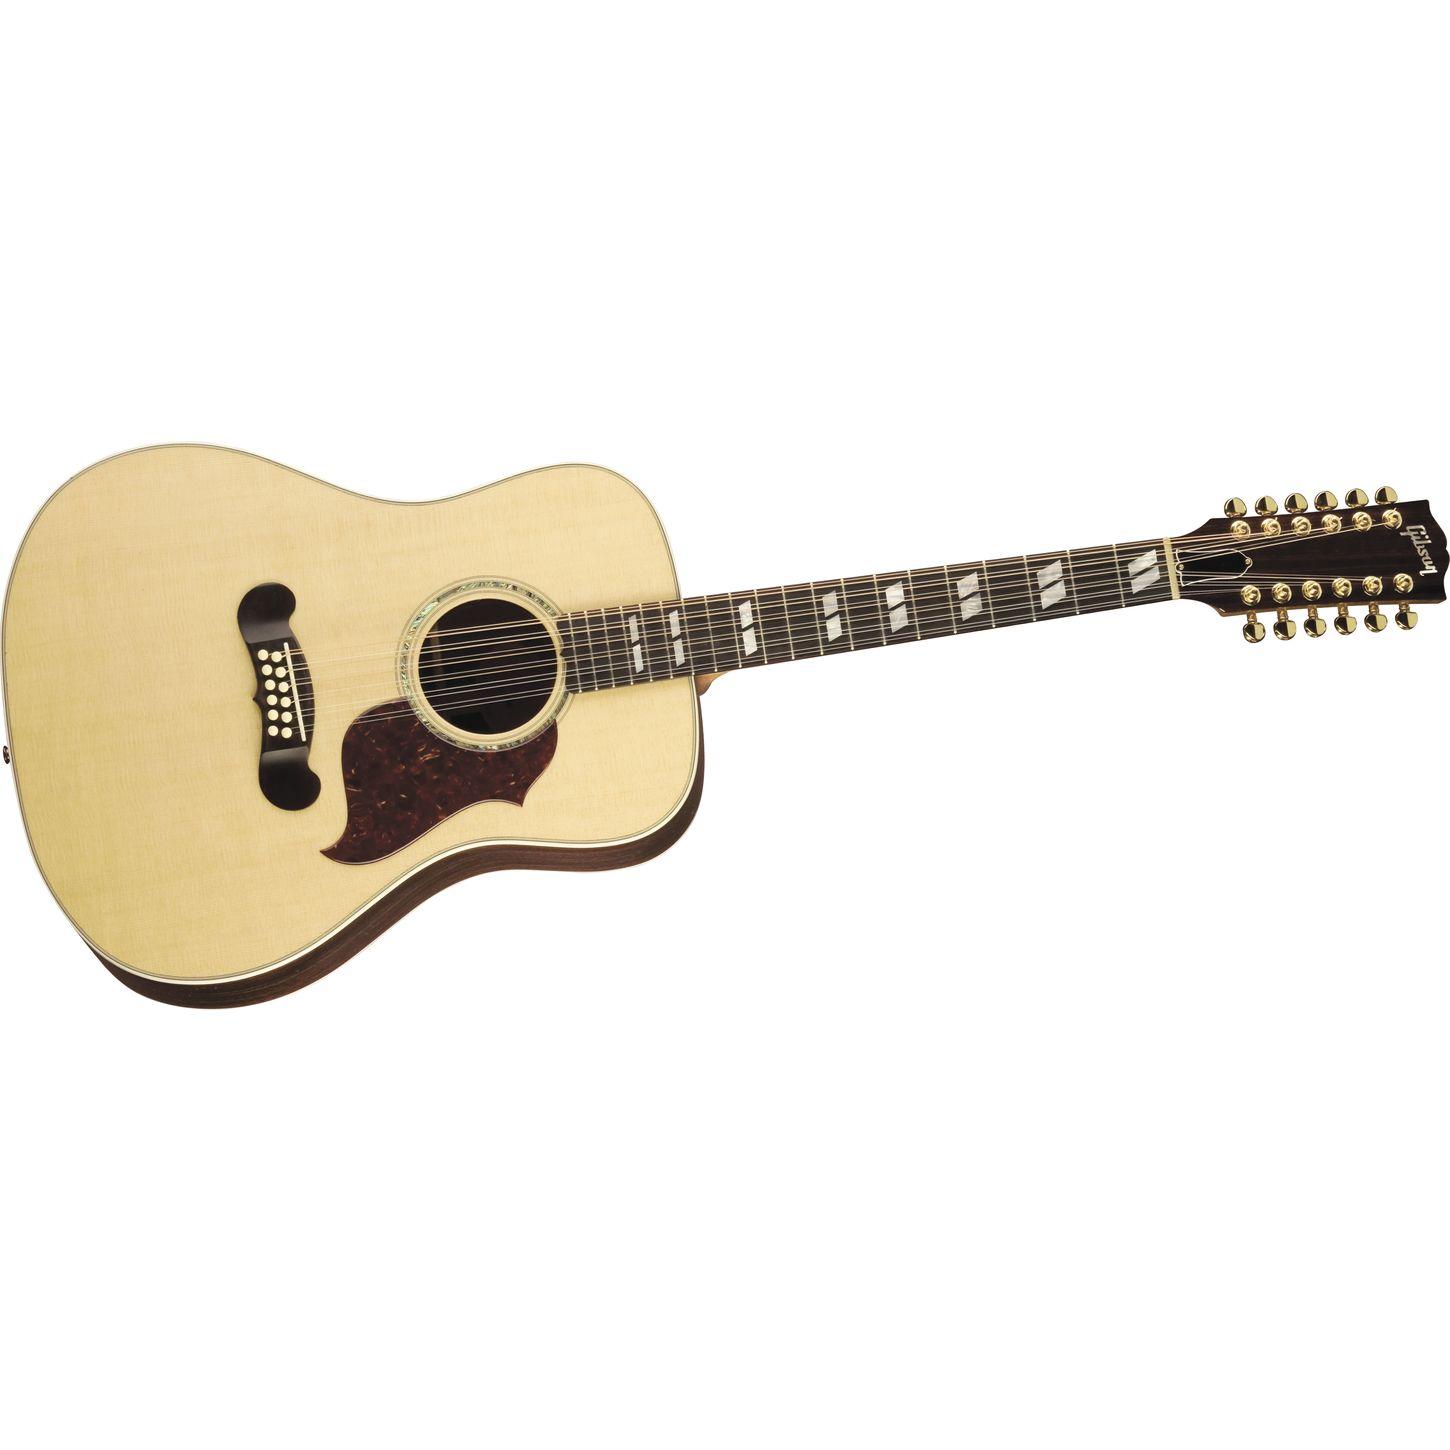 gibson songwriter deluxe modern classic 12 string acoustic electric guitar musician 39 s friend. Black Bedroom Furniture Sets. Home Design Ideas